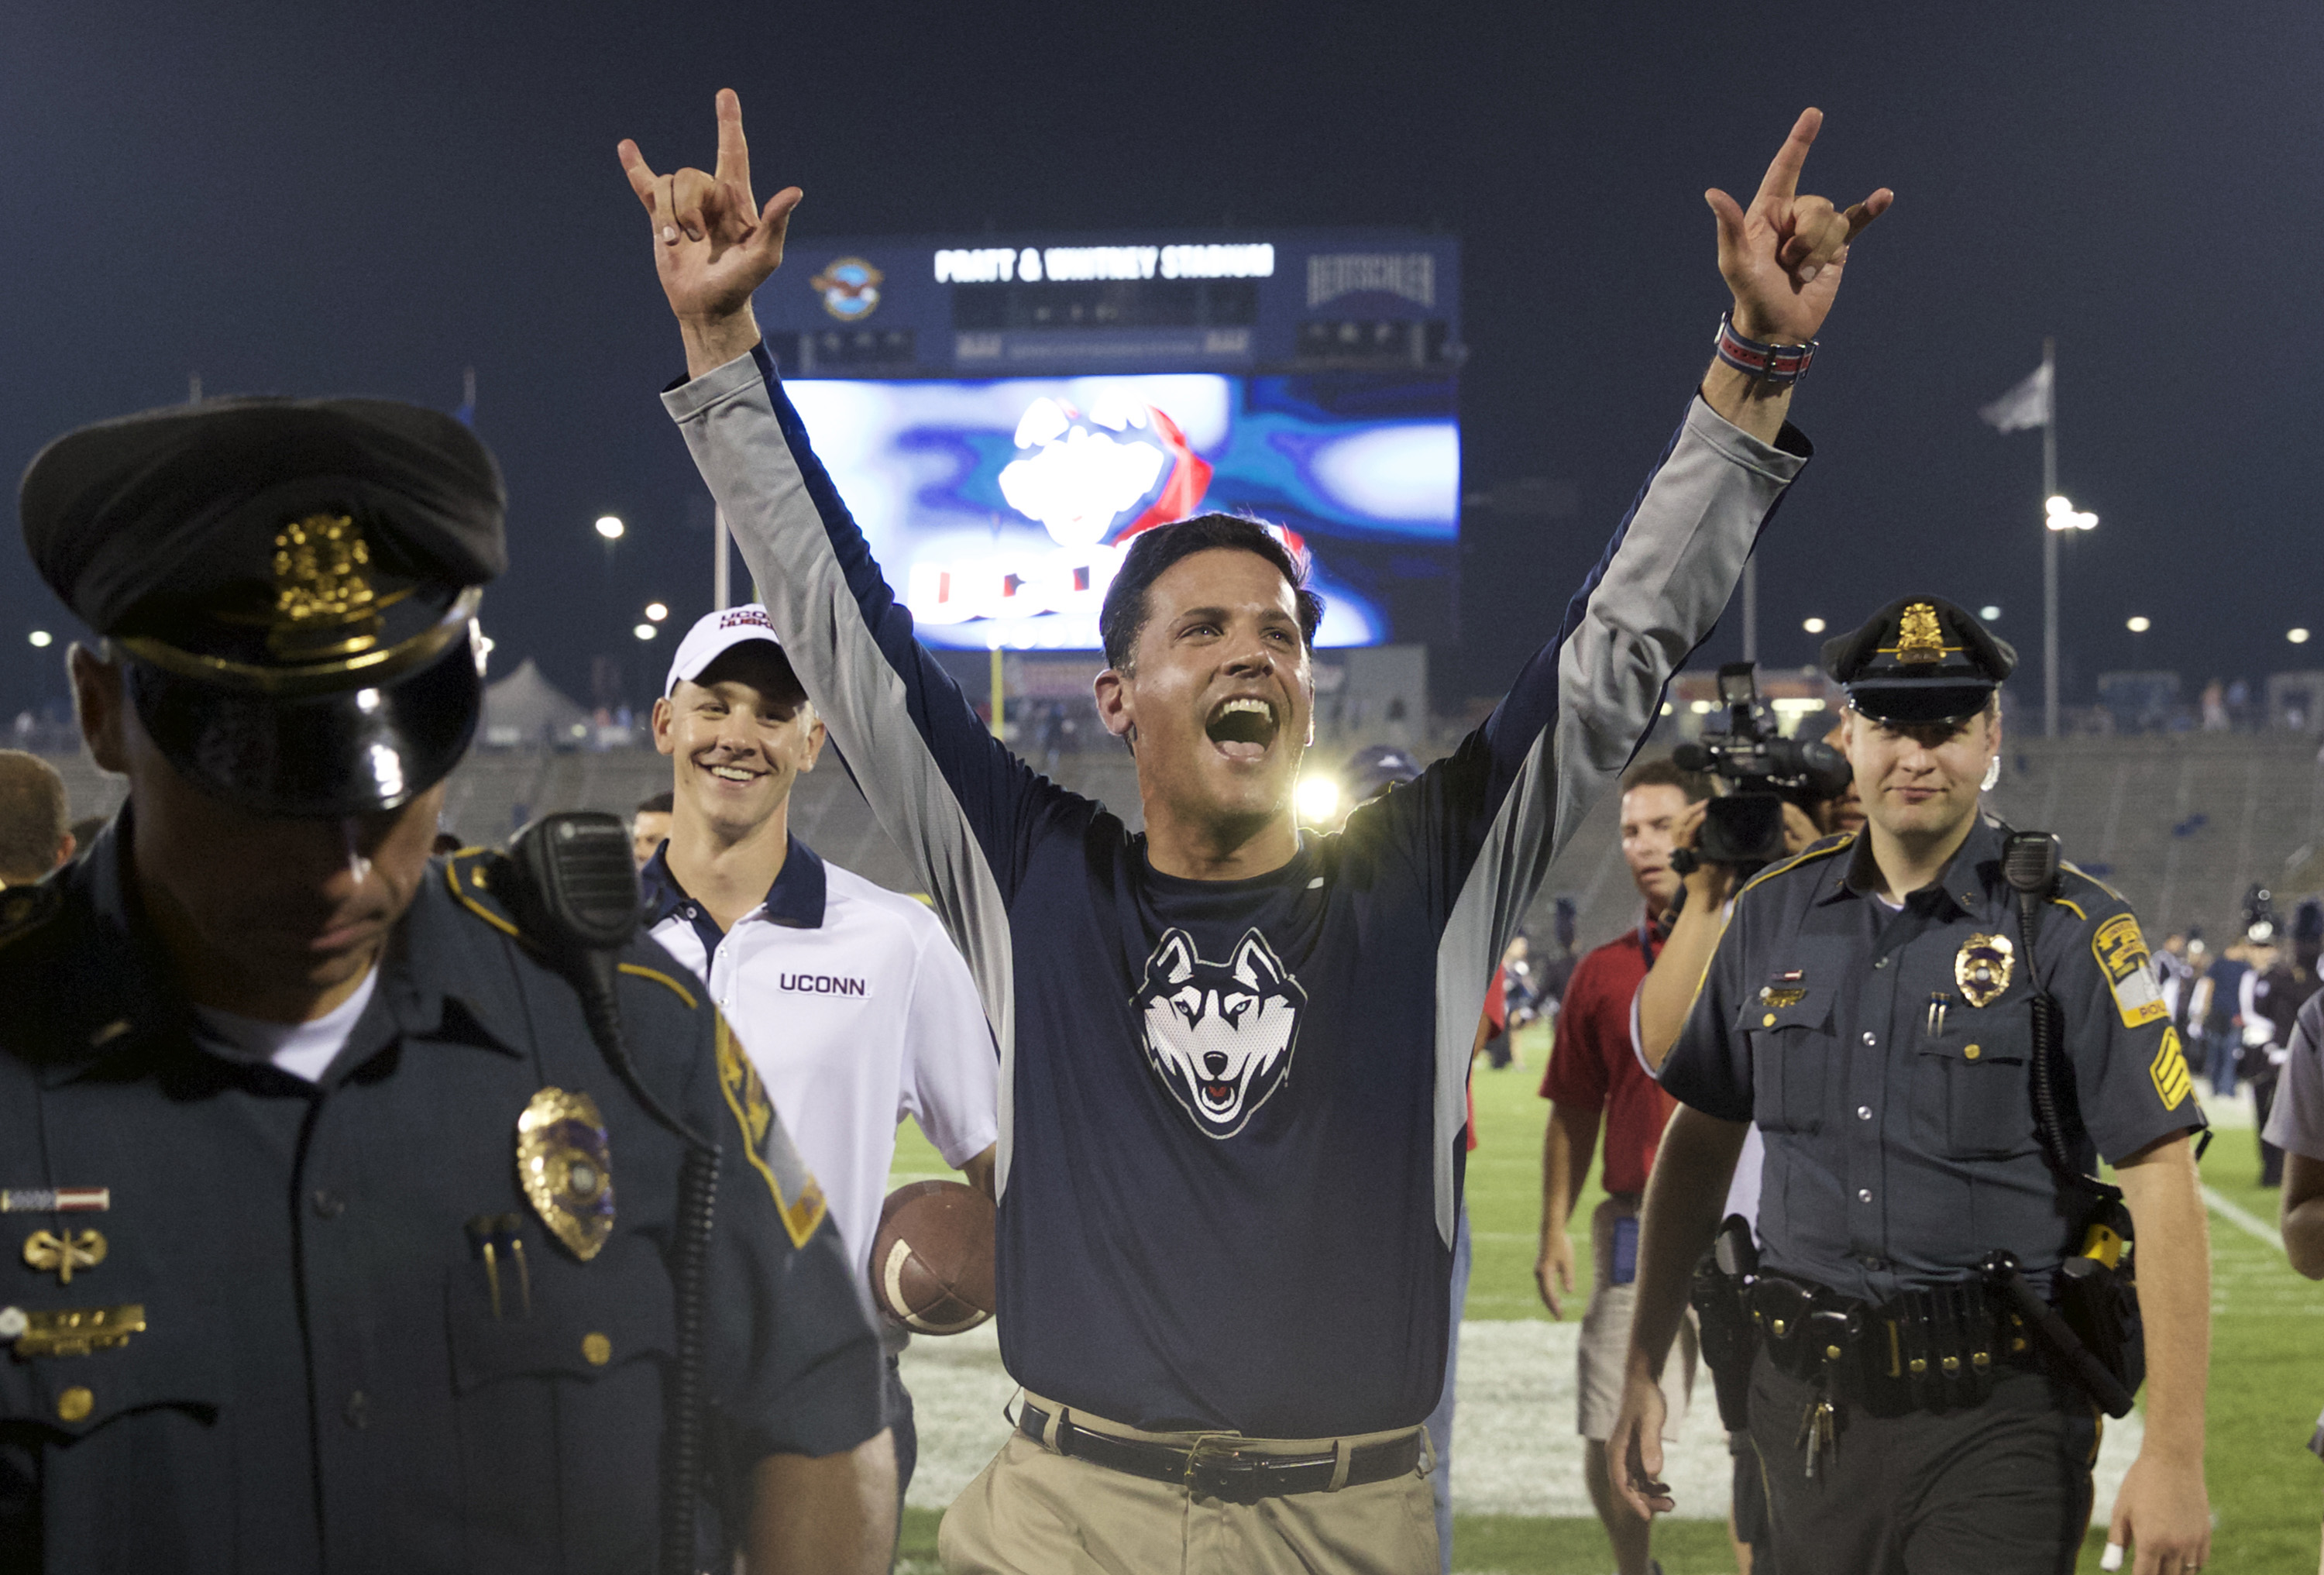 Bob Diaco and the UConn Huskies will be resting easy at 1-0 with a chance to watch many future opponents today.